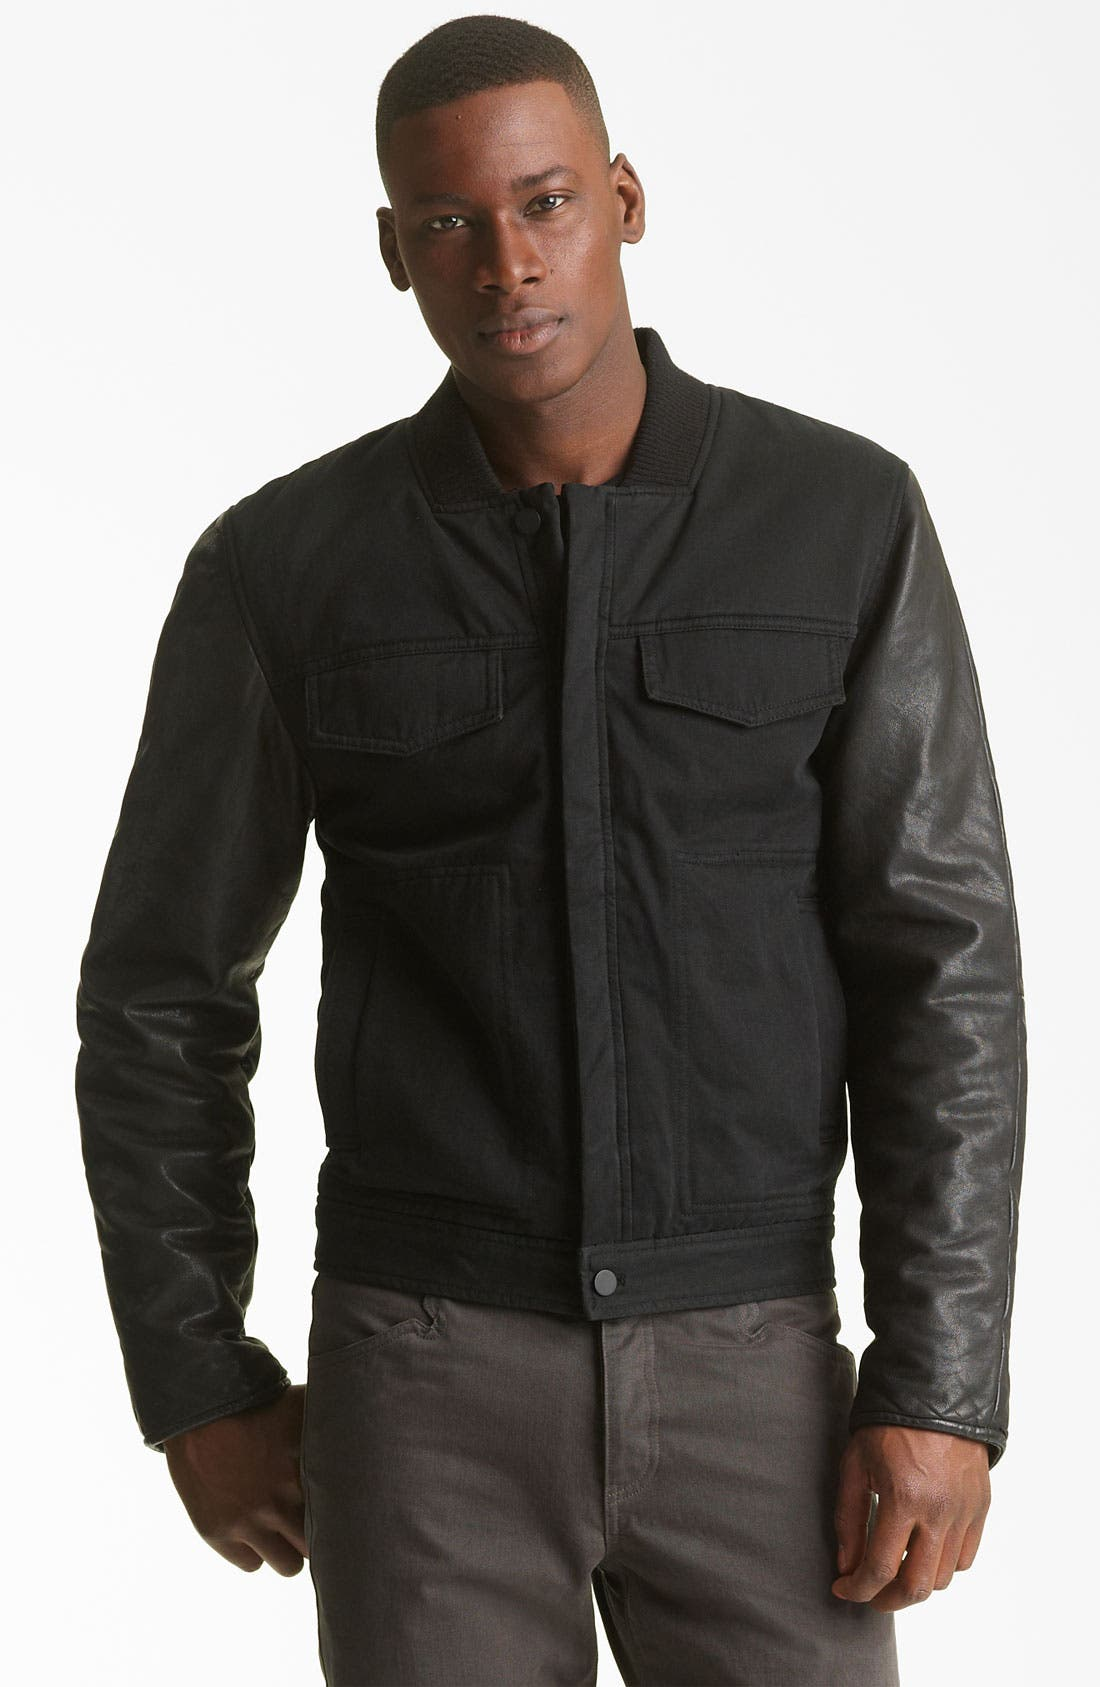 Alternate Image 1 Selected - T by Alexander Wang Cotton & Leather Jacket